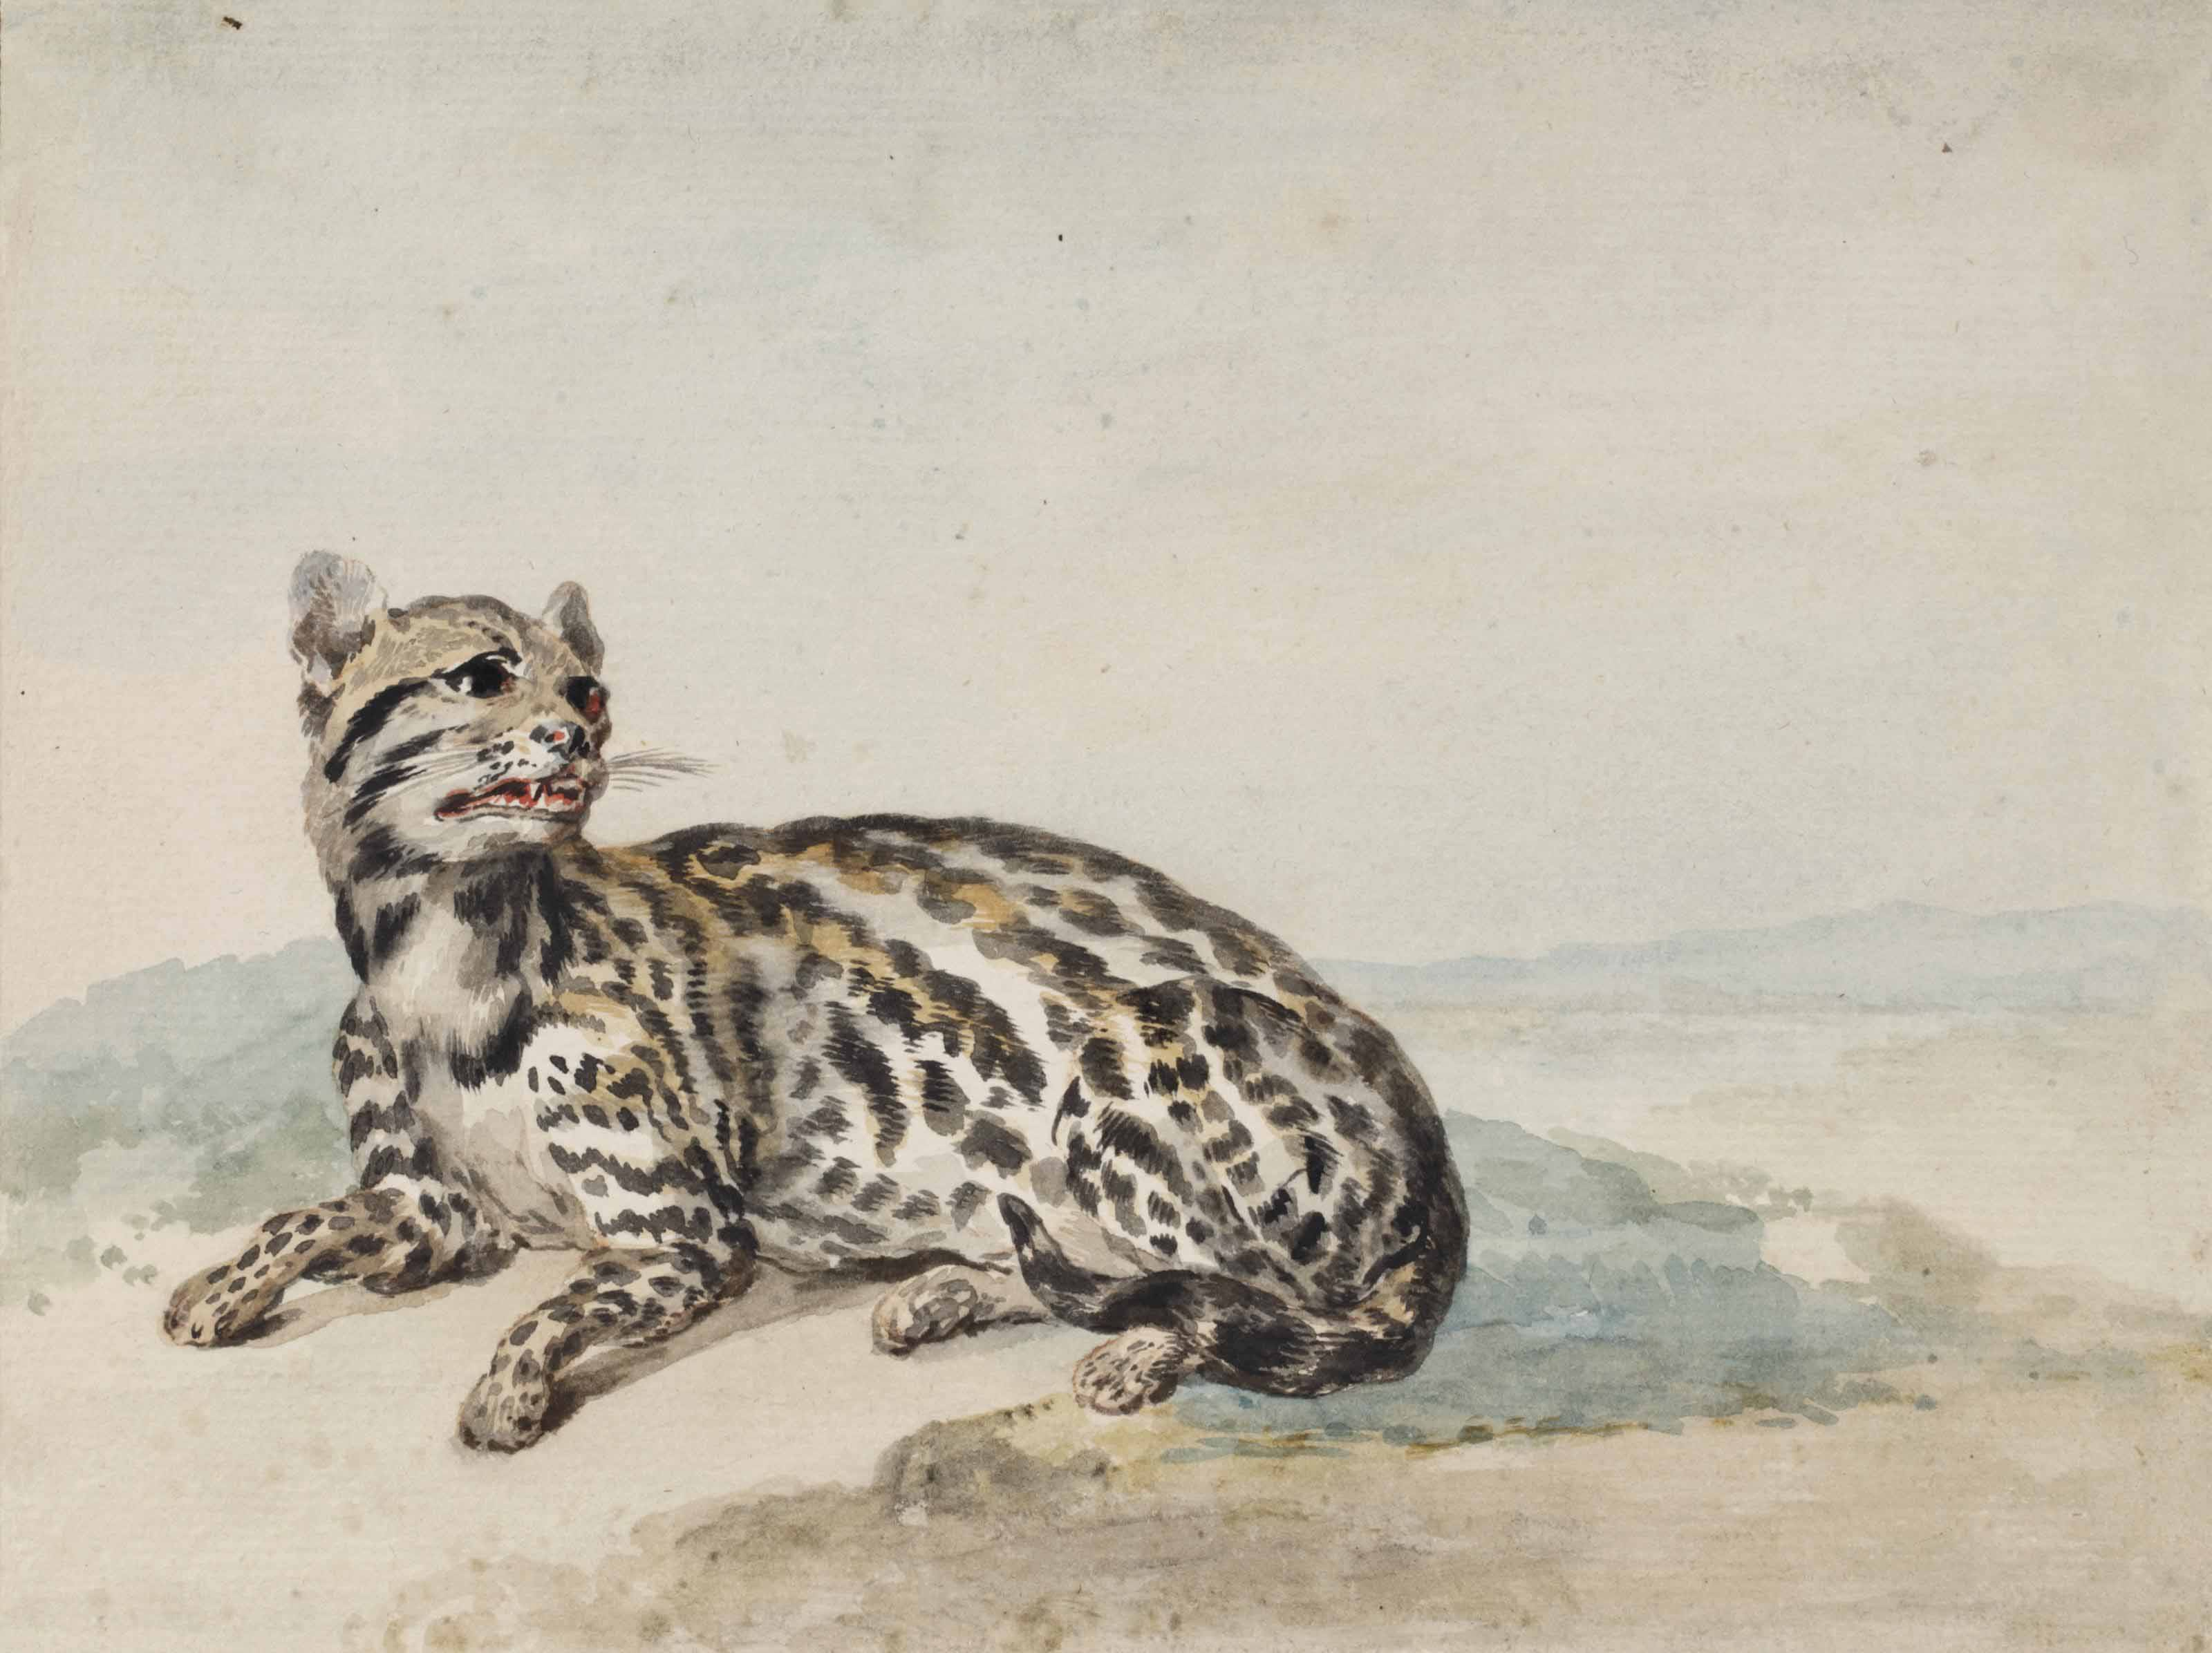 An oncilla from Surinam (Leopardus tigrinus)